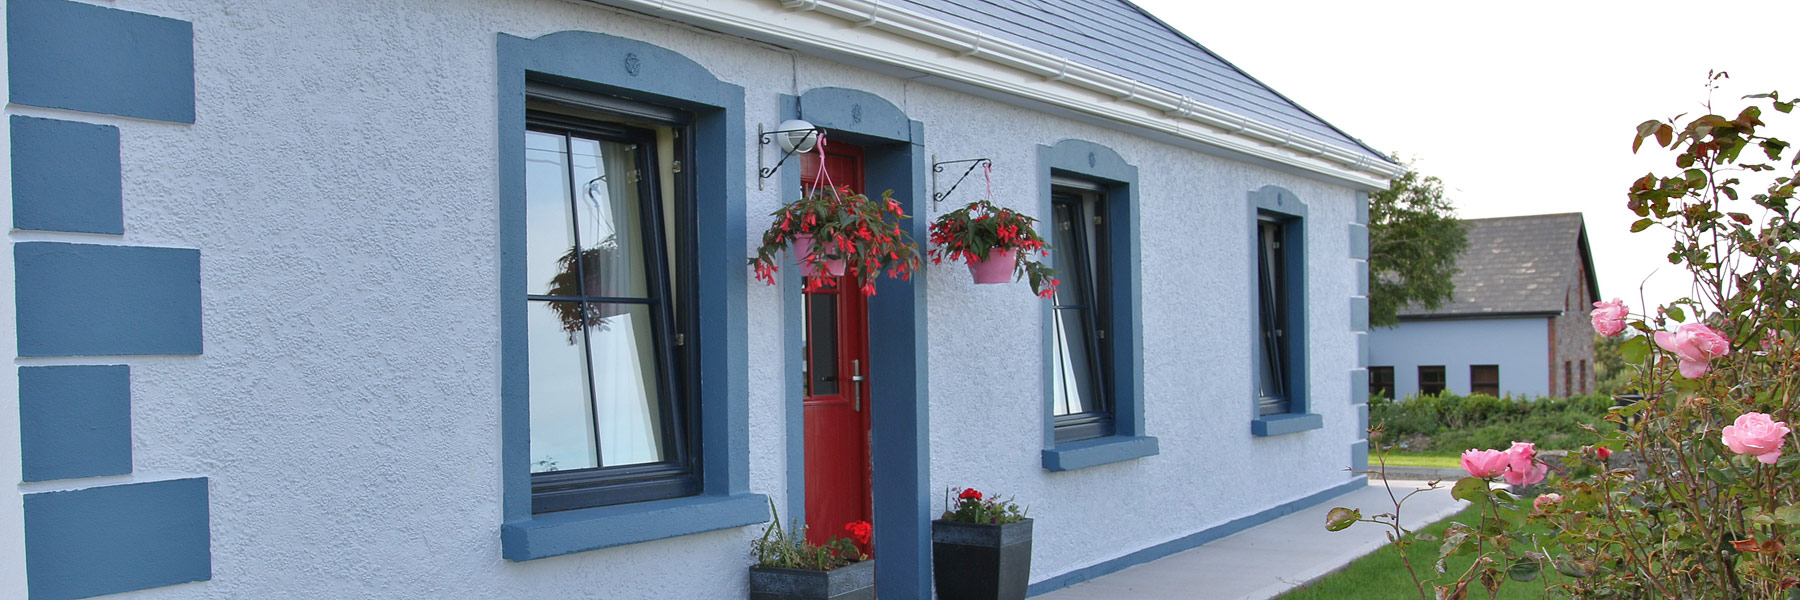 Wild Atlantic Way Cottage frontage